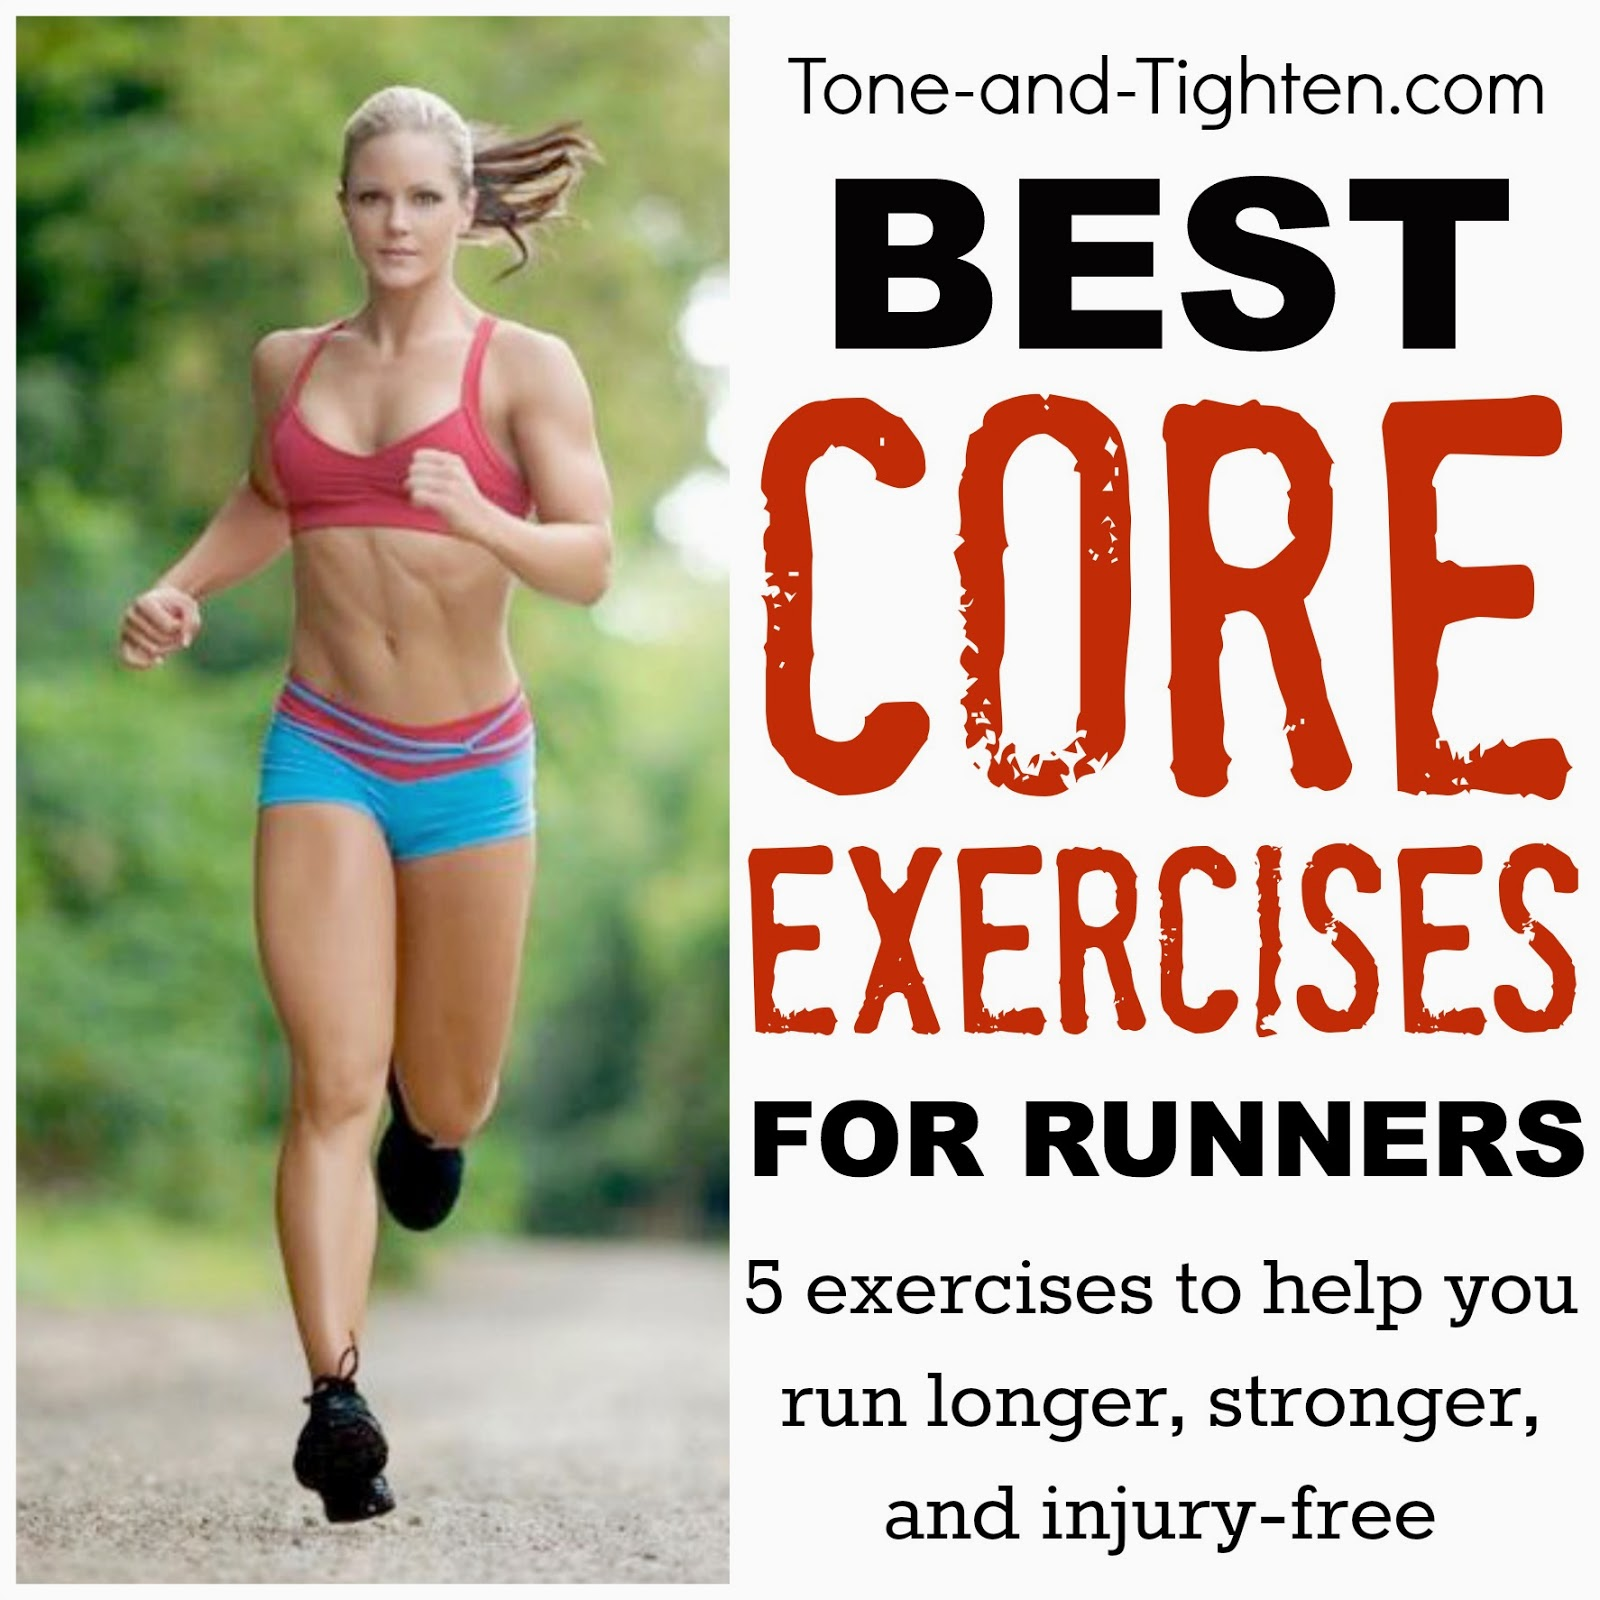 https://tone-and-tighten.com/2014/03/best-exercises-for-runners-how-to-train-your-core-for-your-next-race.html